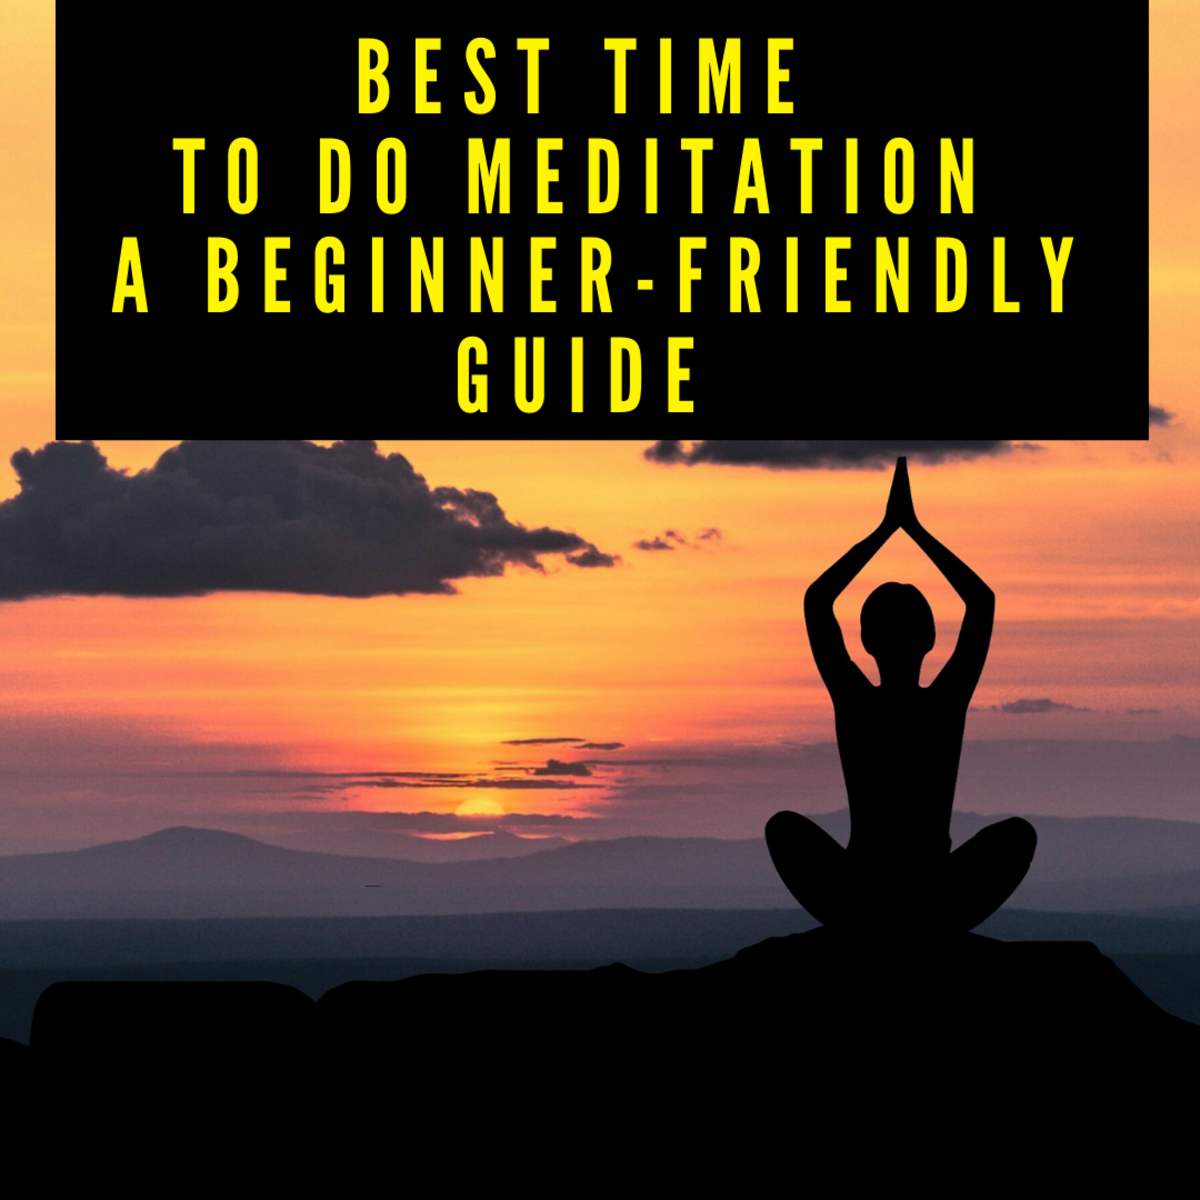 Best Time to do Meditation: A Beginner-Friendly Guide